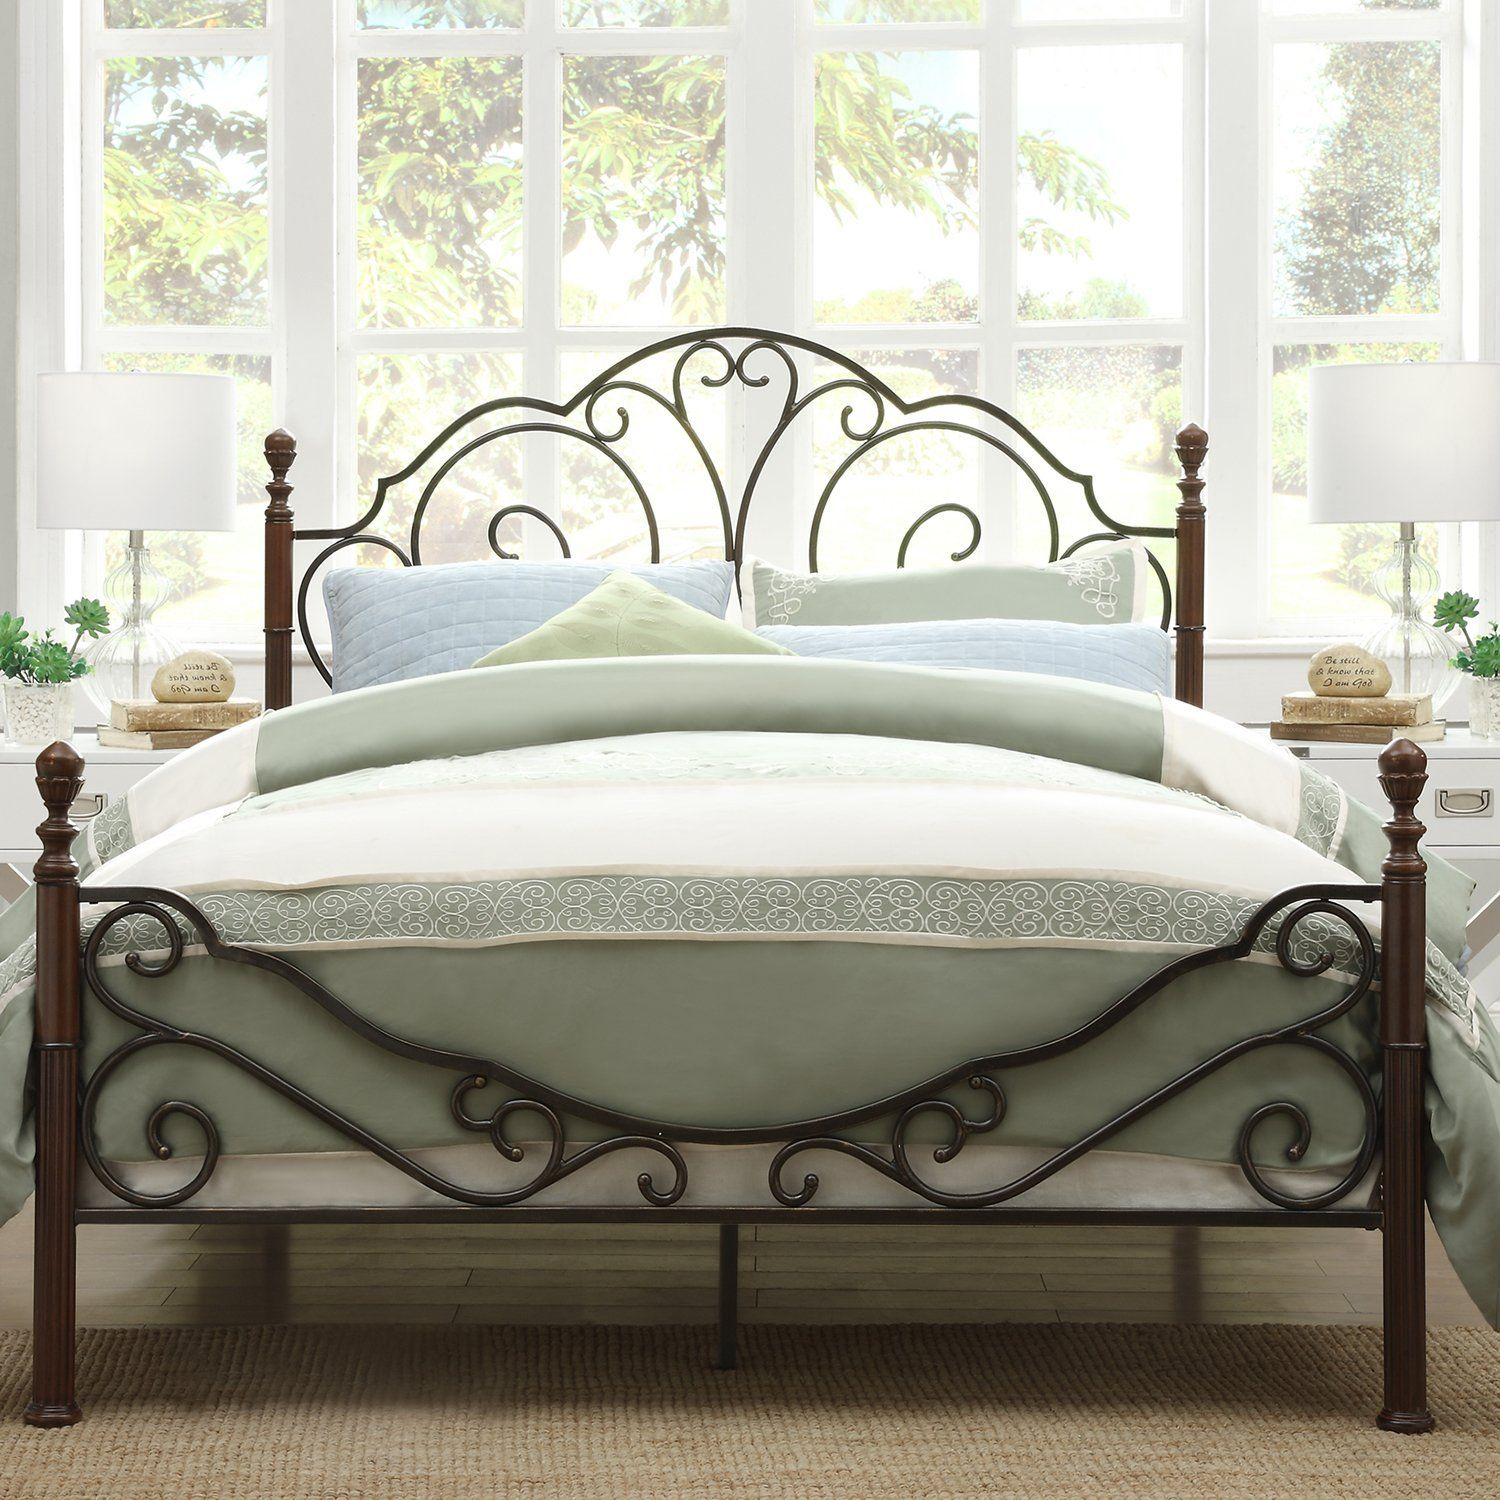 ad3d8d6e0d5 Bedroom  Queen Rhapsody Metal Headboard With Curved Grill Design And Finial  Posts Glossy White Finish from Sleeping Below the Trees with Iron Bed Frame